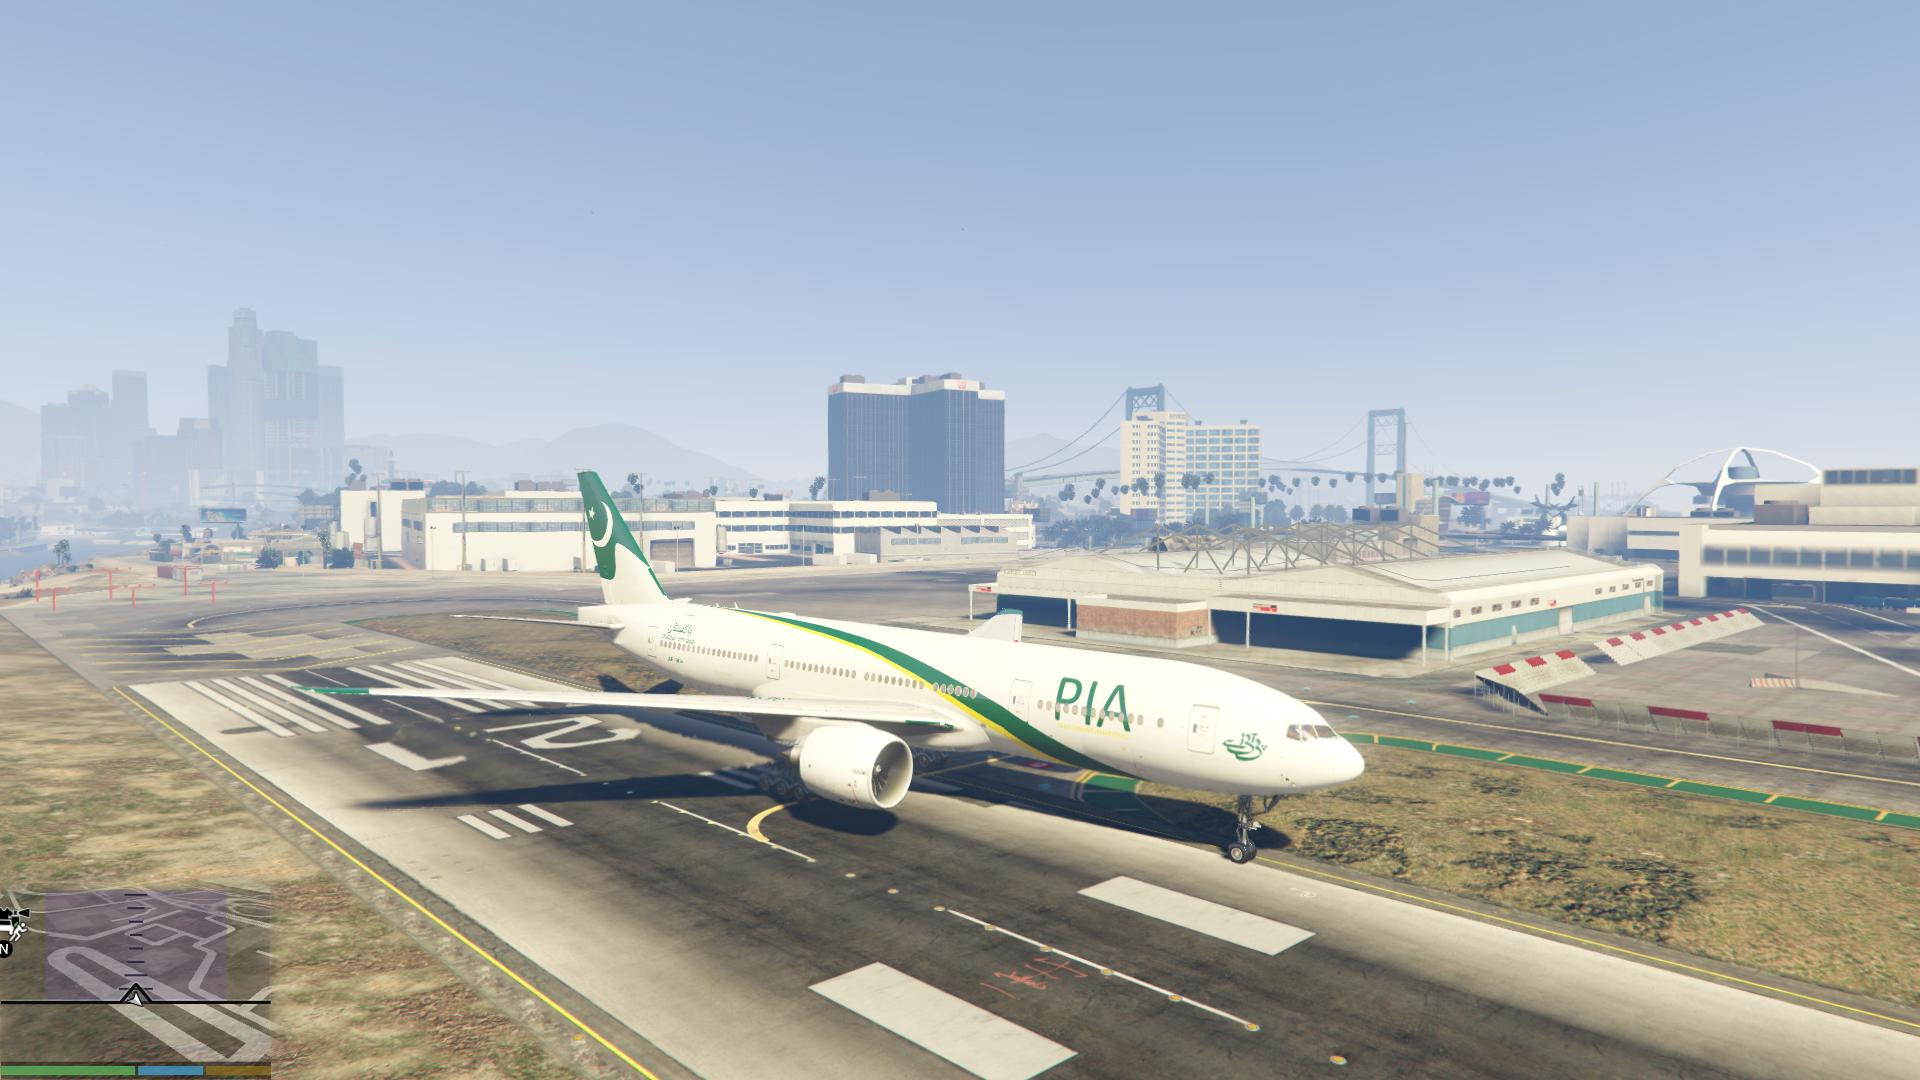 pia pakistan international airline Pakistan international (pia)  please share what you got related to pia here with the world and promote our international airline to the world.